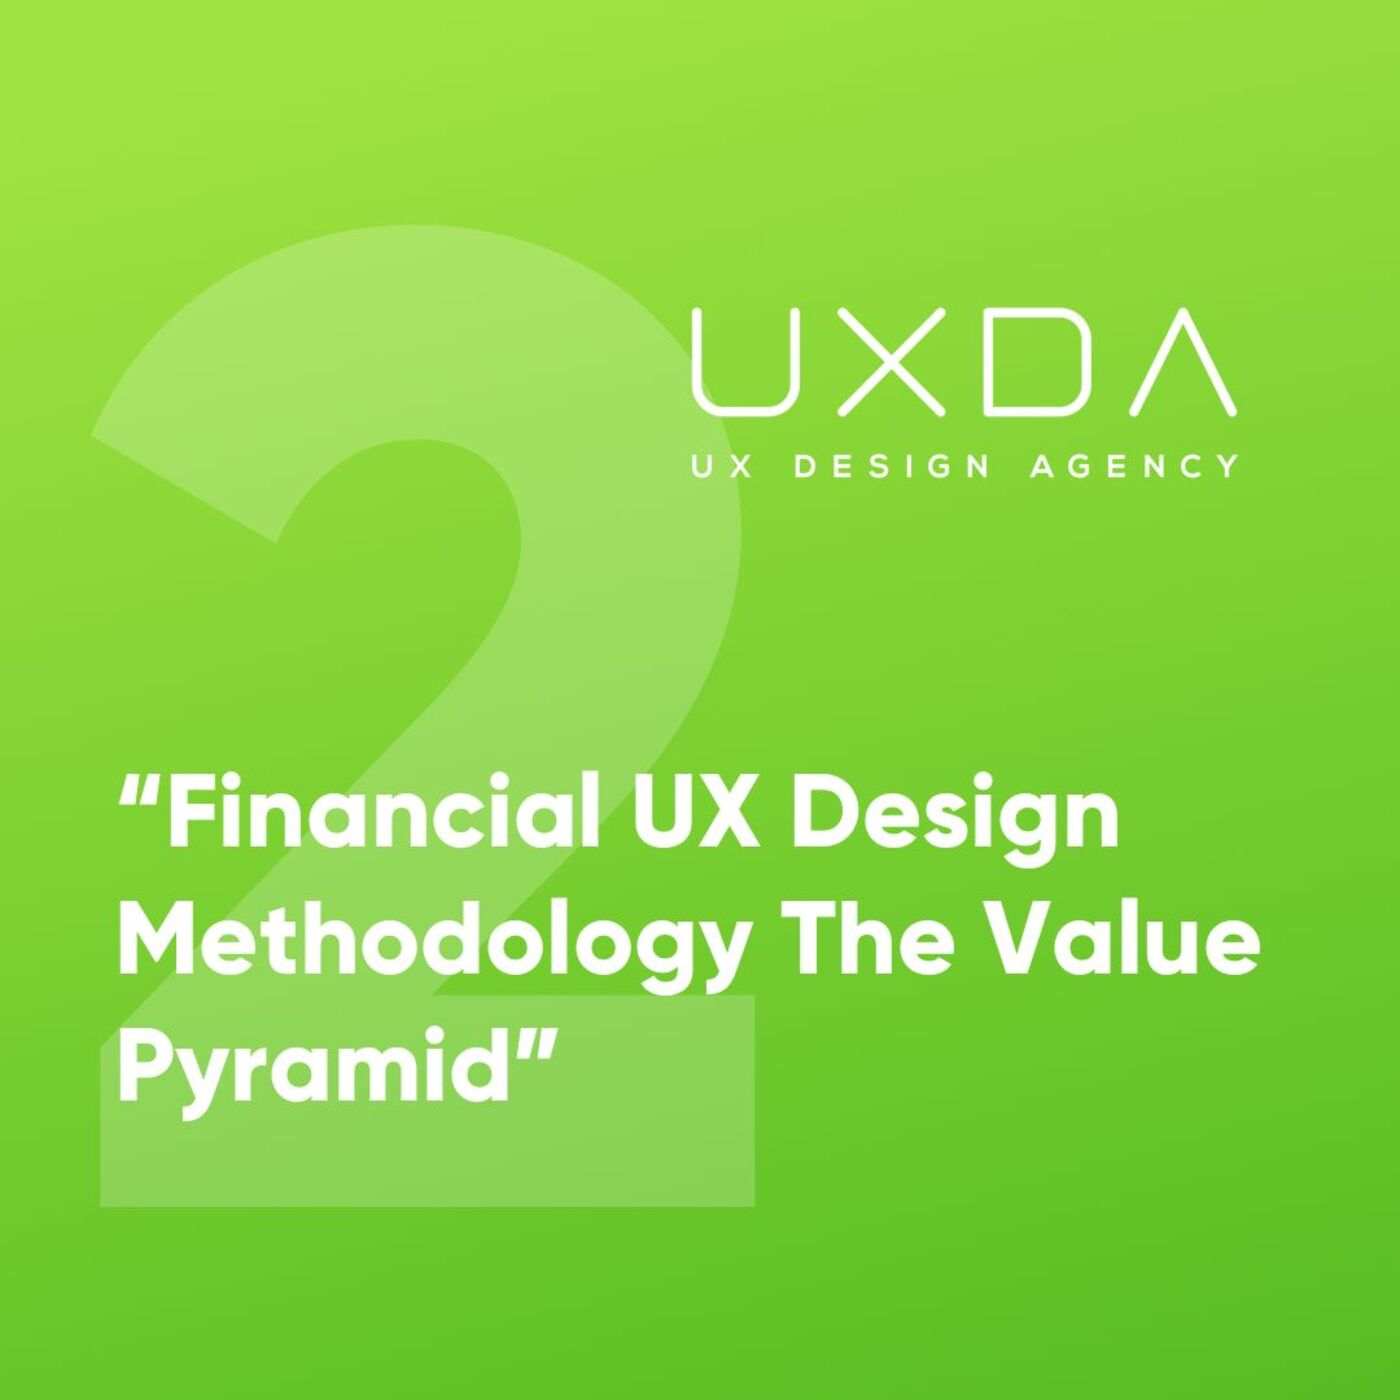 #2 The Value Pyramid of the Financial UX Design Methodology